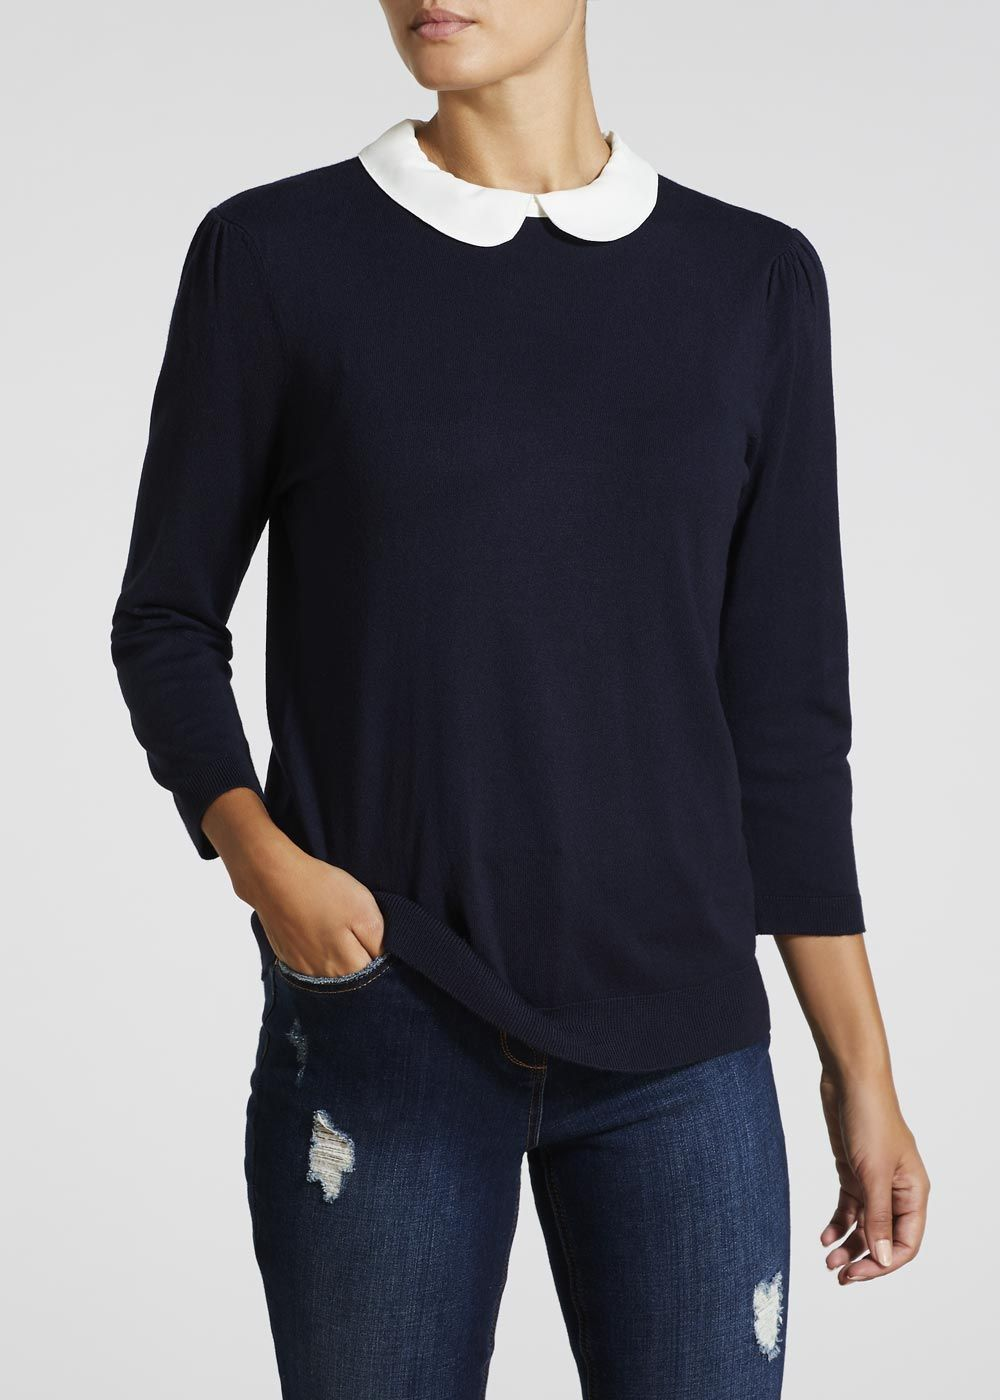 94bb0b8f8 2 in 1 Peter Pan Collar Shirt Jumper in 2018   what to wear ...